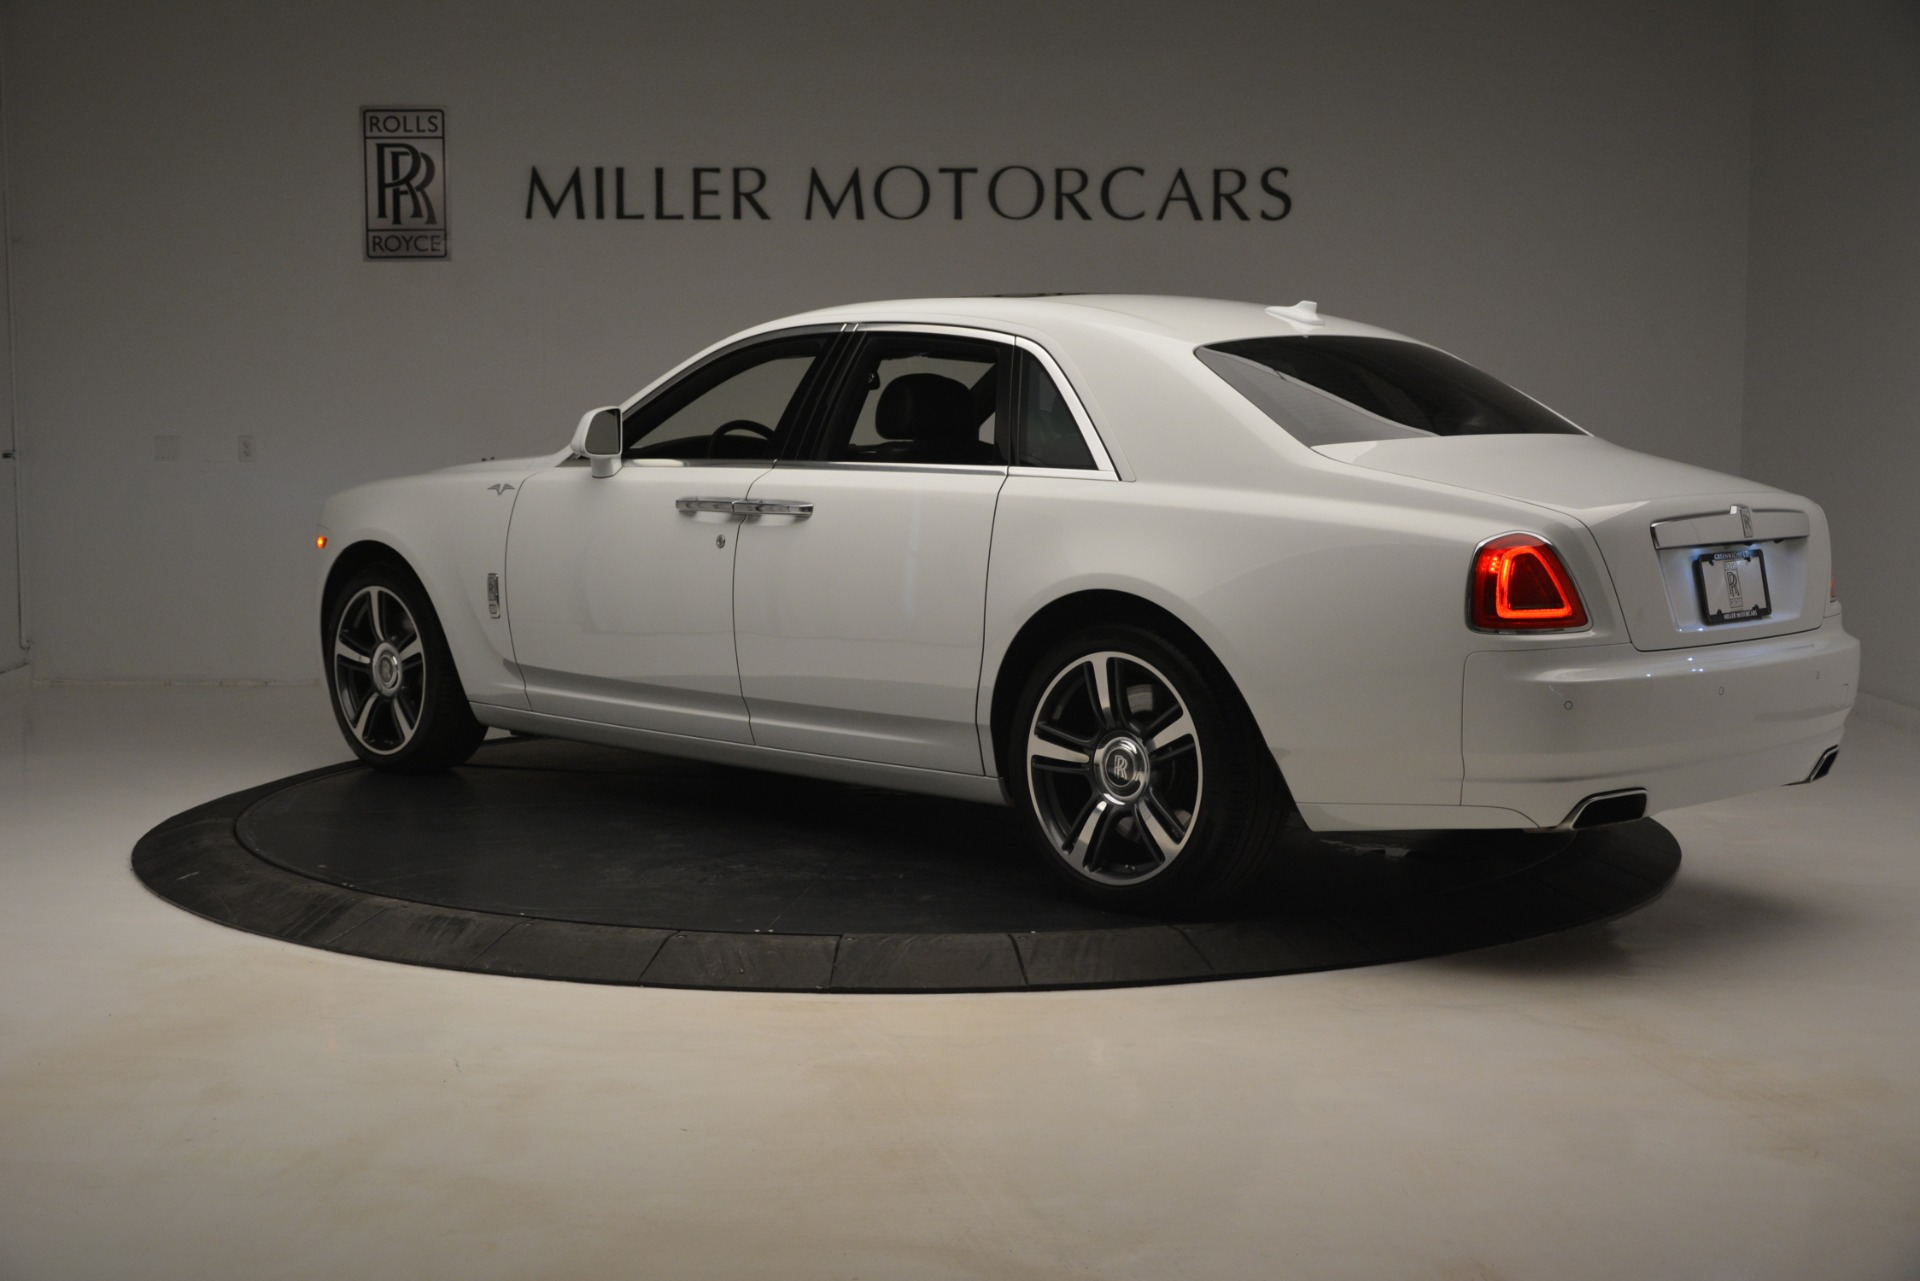 Used 2014 Rolls-Royce Ghost V-Spec For Sale In Greenwich, CT 2989_p5